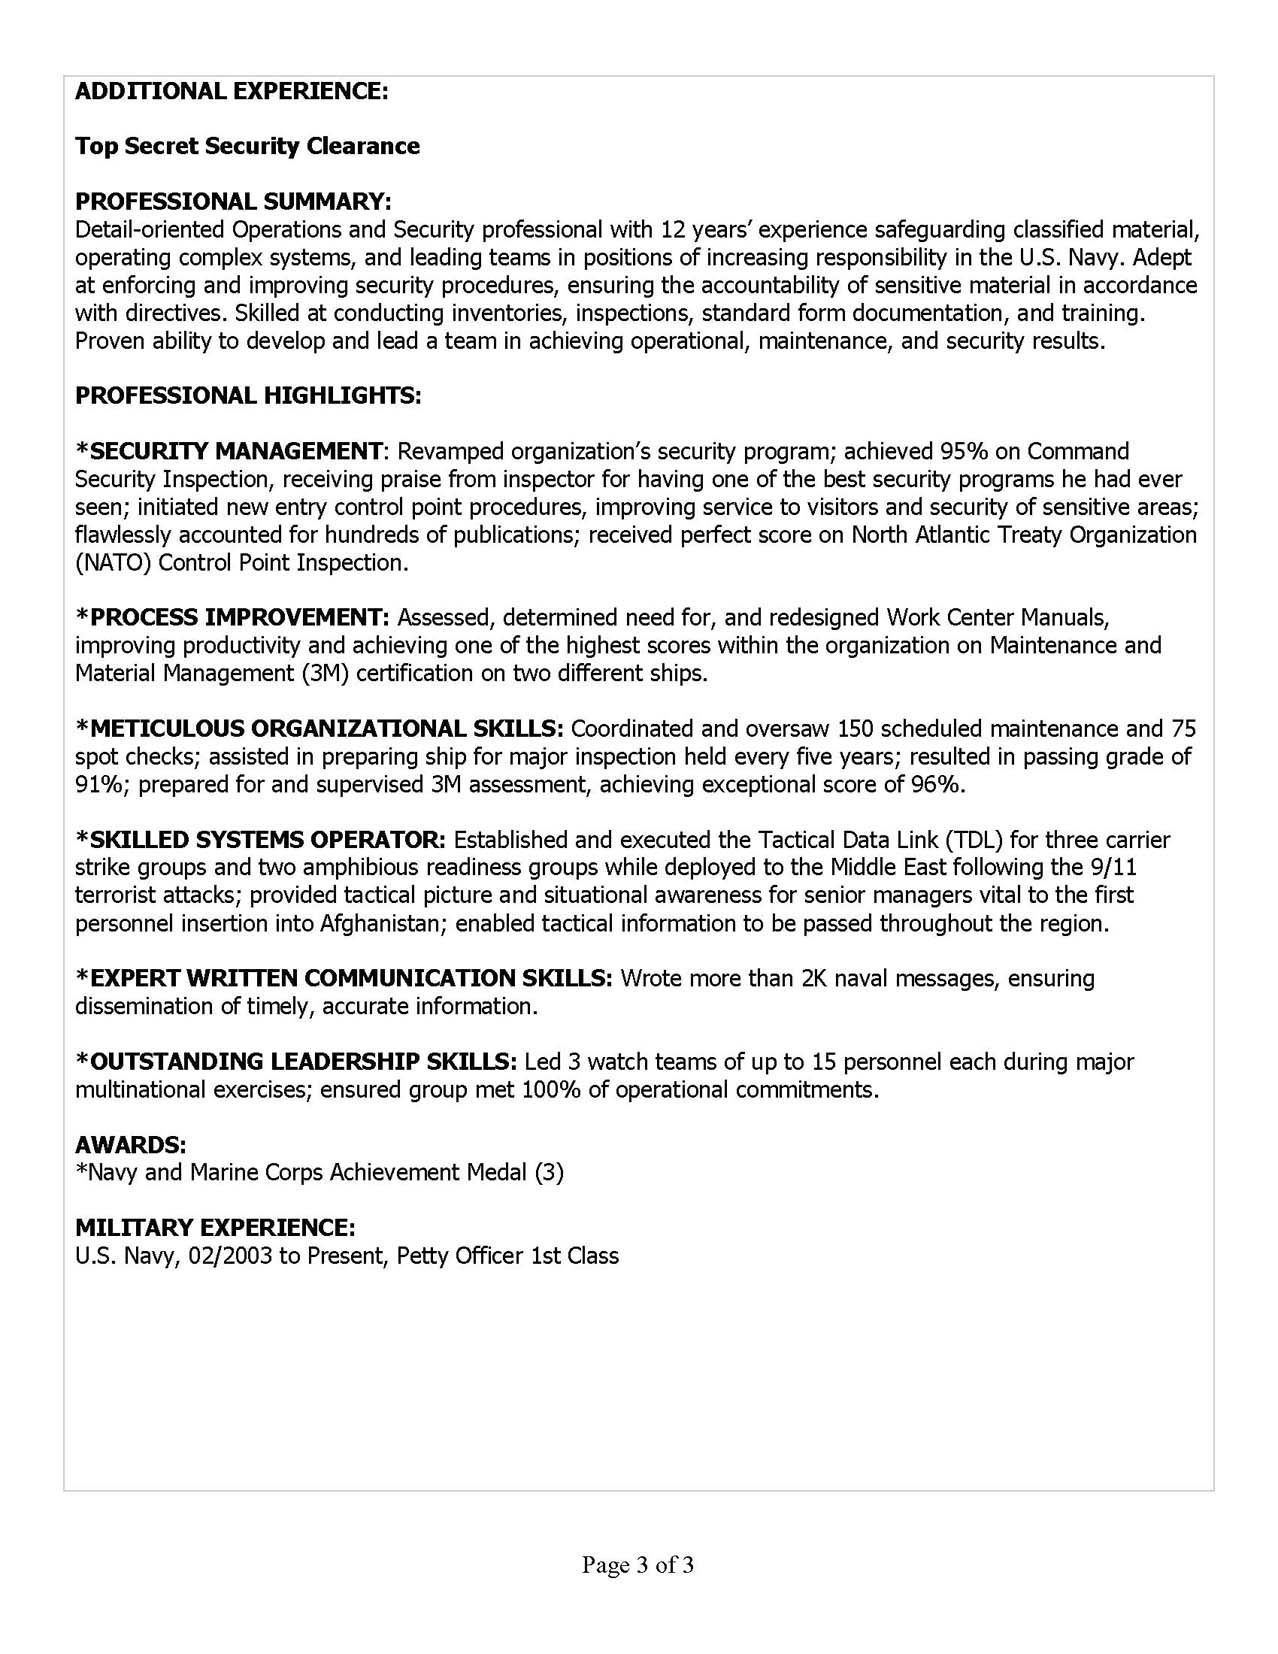 Professional Resume Builder Service Resume For Usajobs Gov Usa Jobs Builder Sample Cover Letter  Home